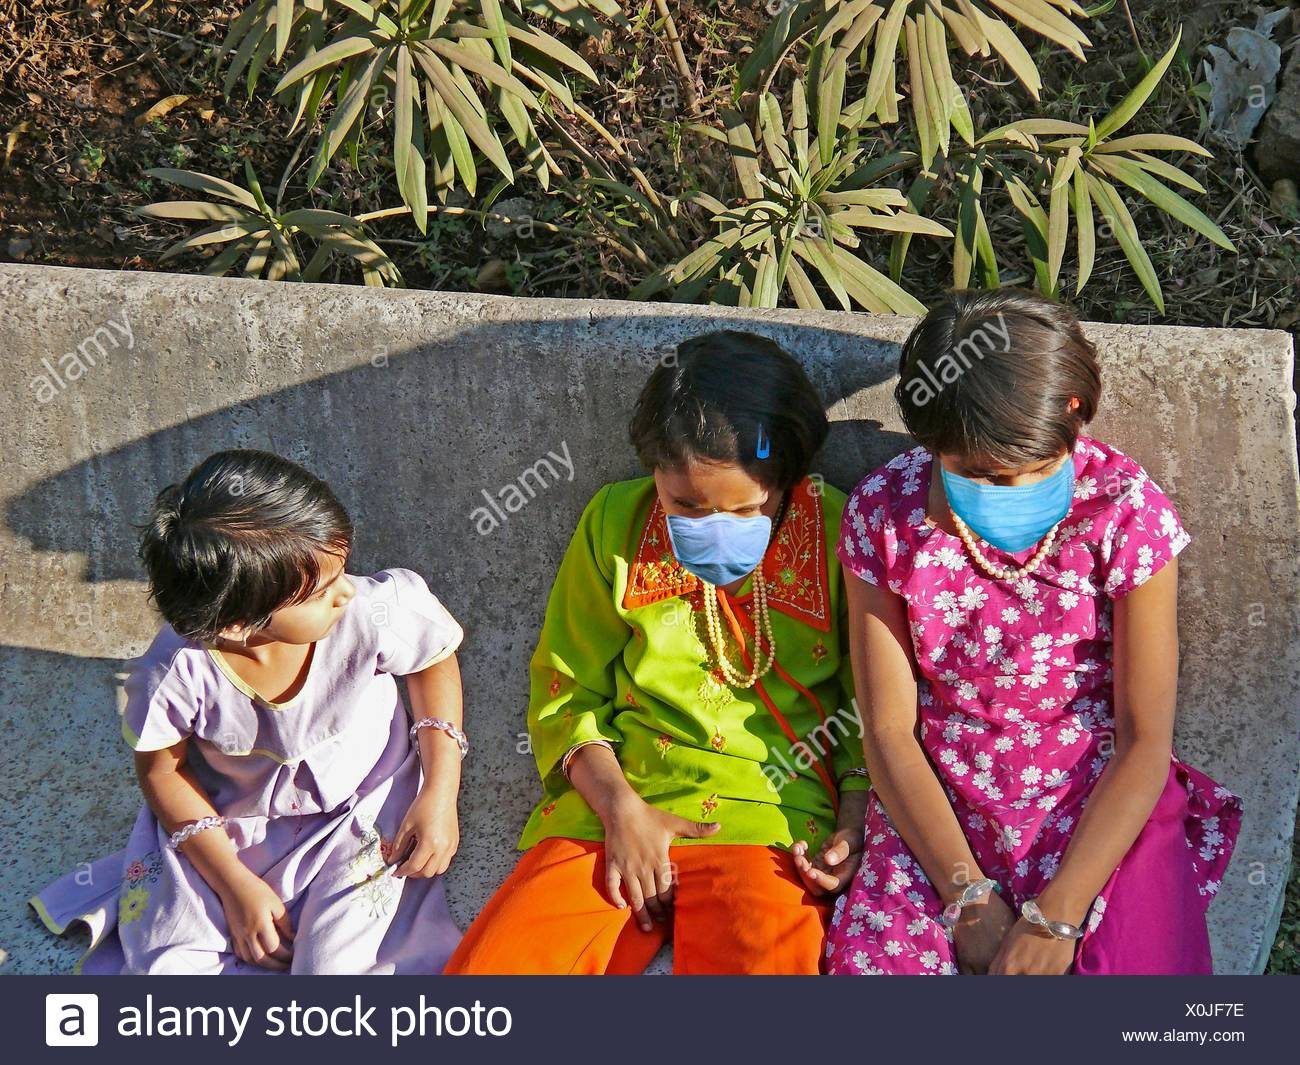 Small Girls in a garden with Precaution masks for Swine Flu, H1N1 - Stock Image